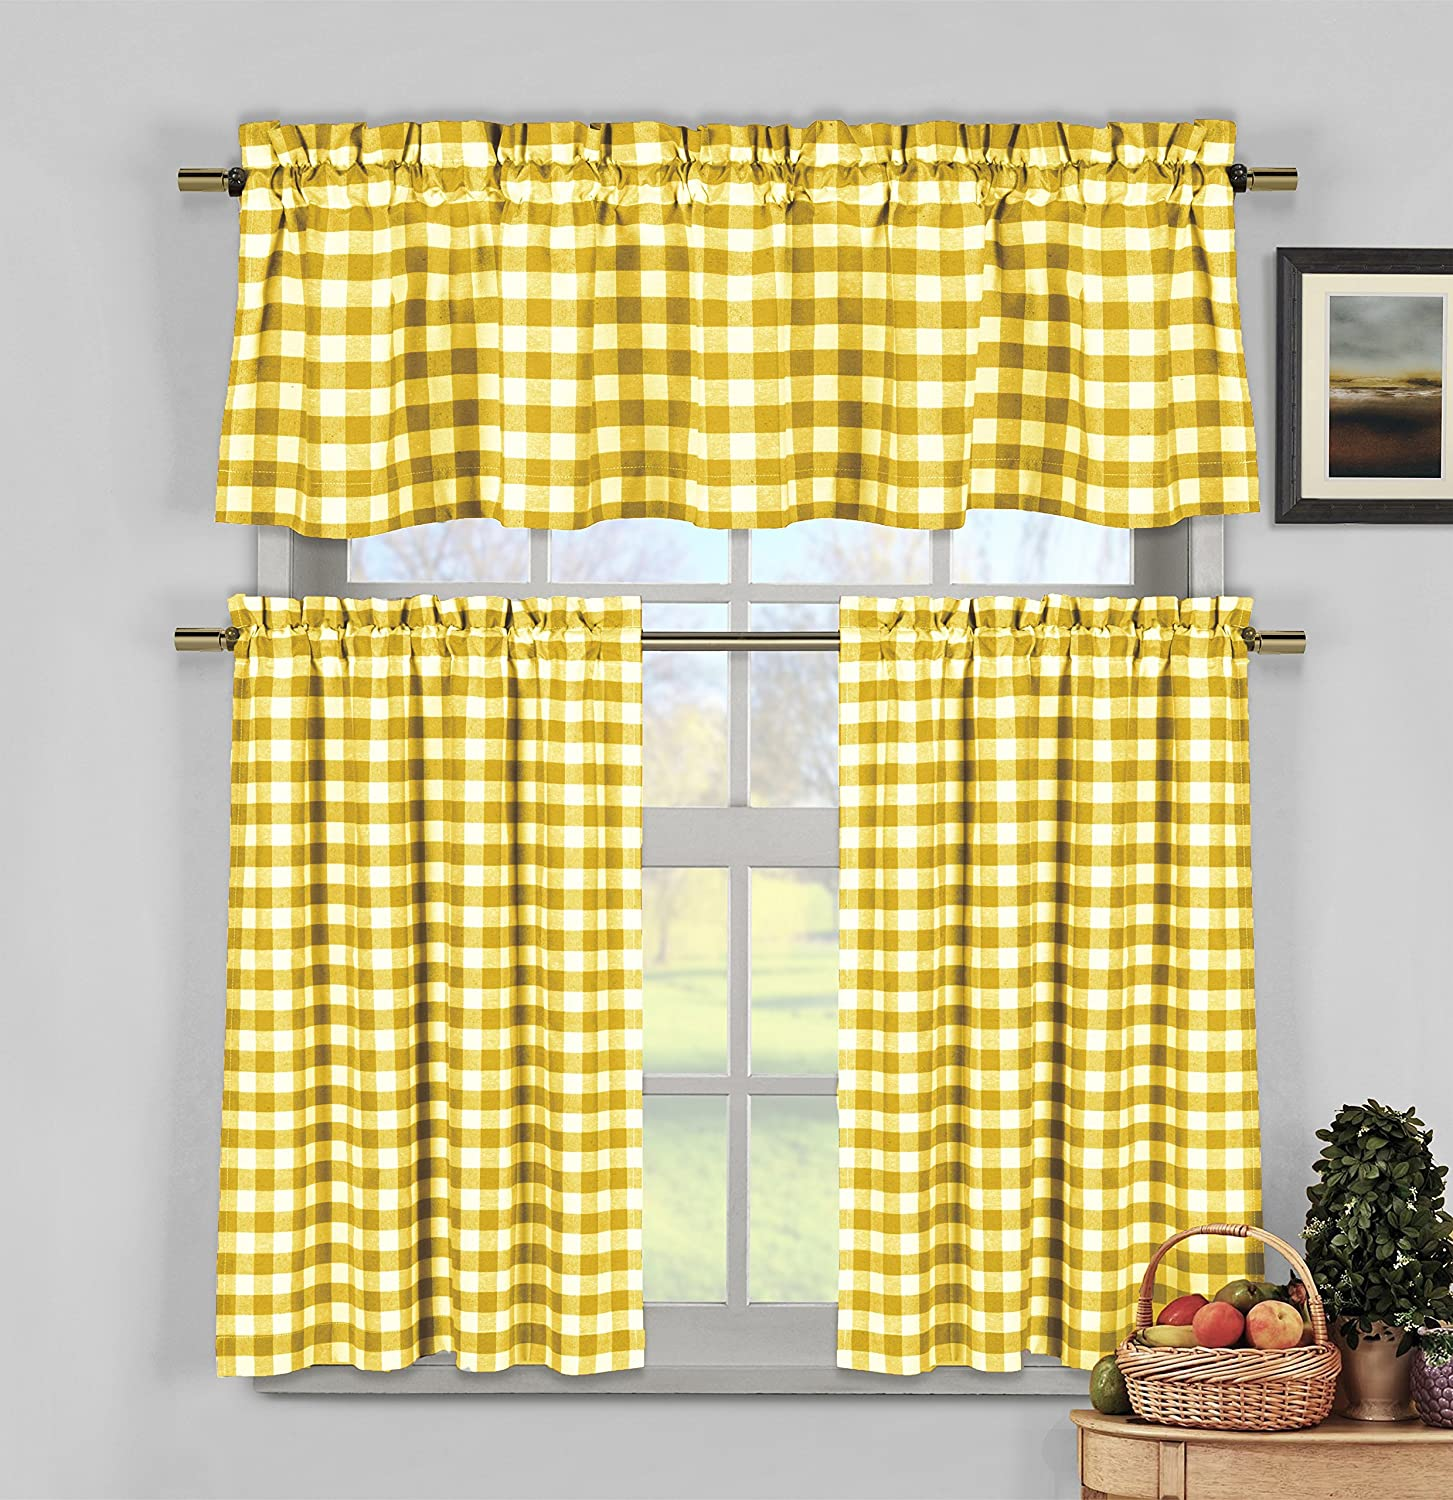 brylanehome gray tie window white amazon curtains vox buffalo and navy of curtain shade checkered info veritas black check up unique beautiful